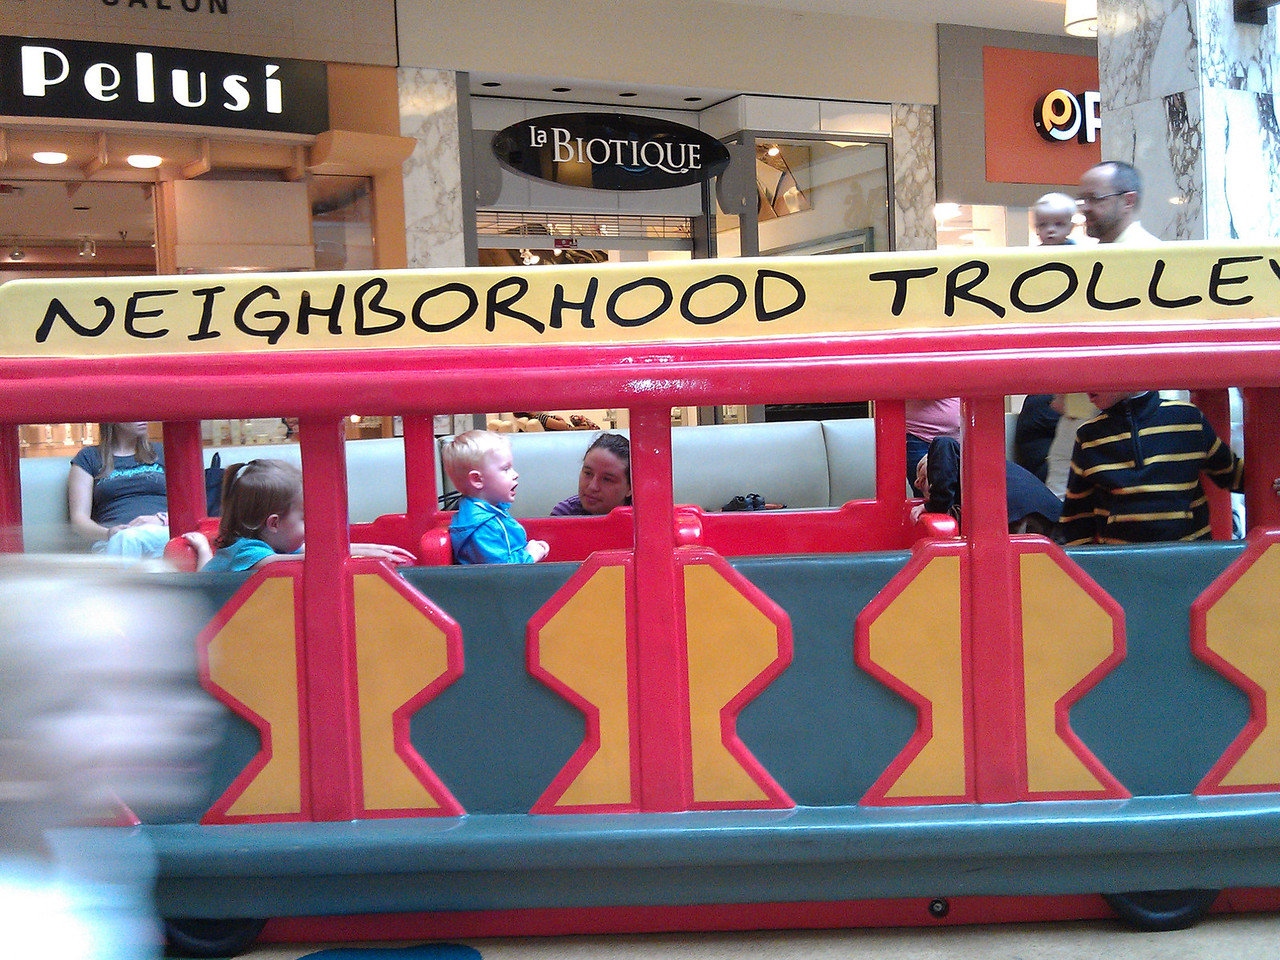 Mr. Rogers' neighborhood trolley at the mall